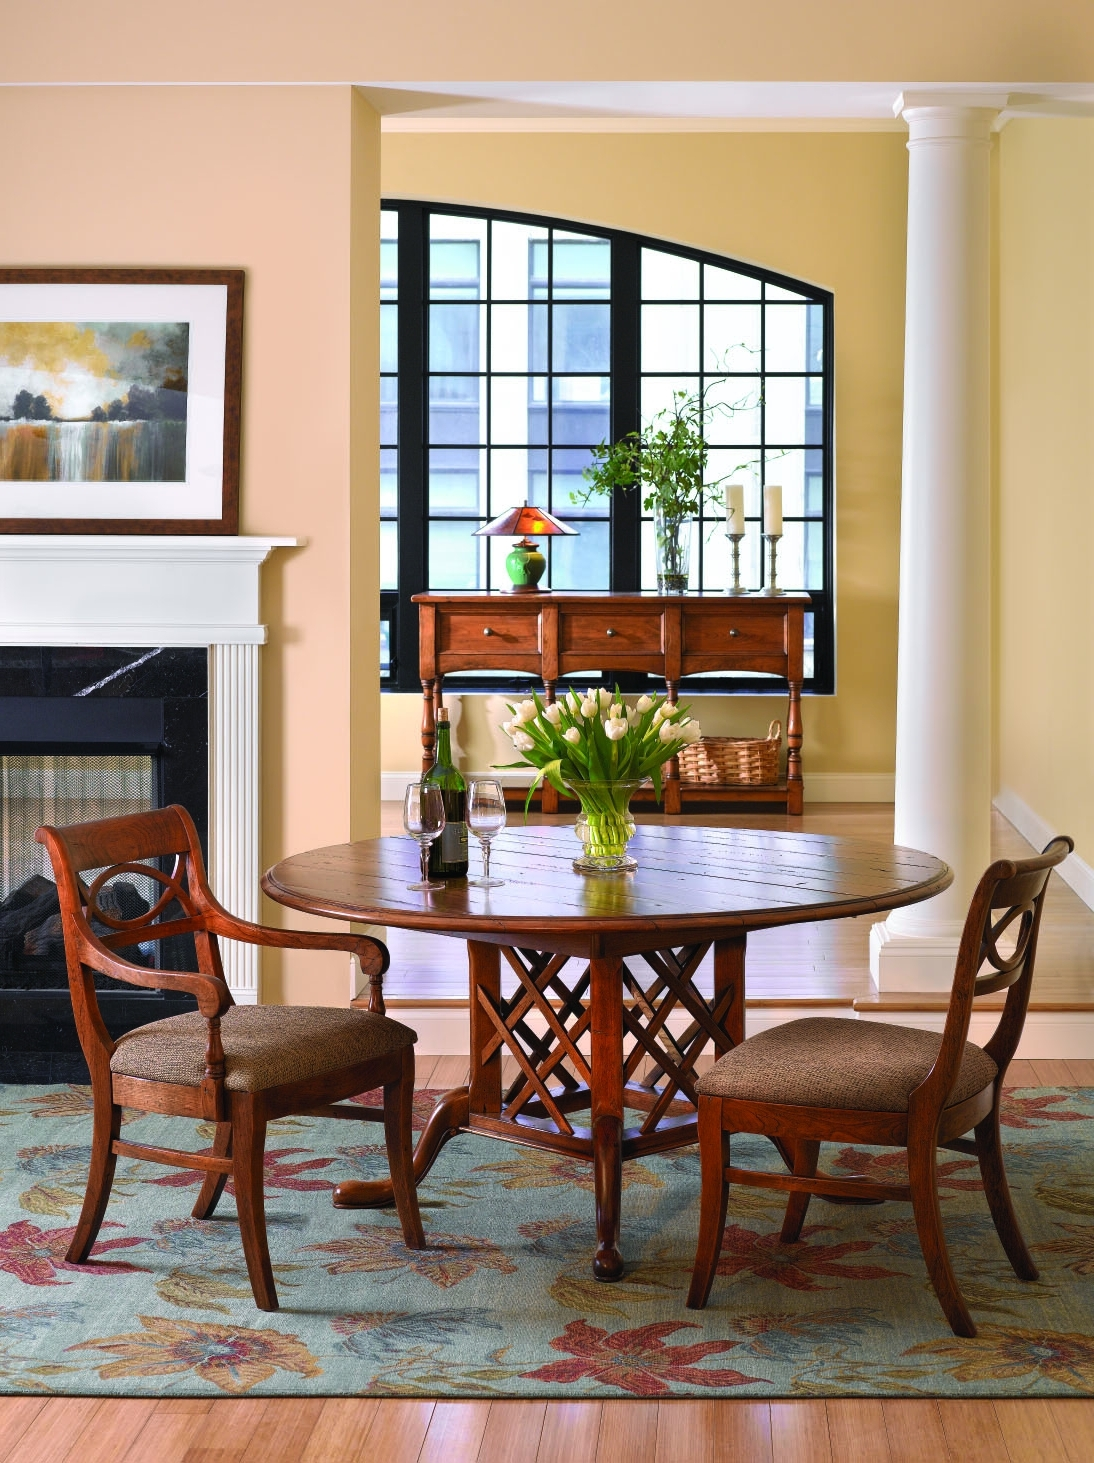 Patterson 6 Piece Dining Sets Intended For Current Patterson Furniture Company – Quality American Made Furniture For (View 20 of 25)